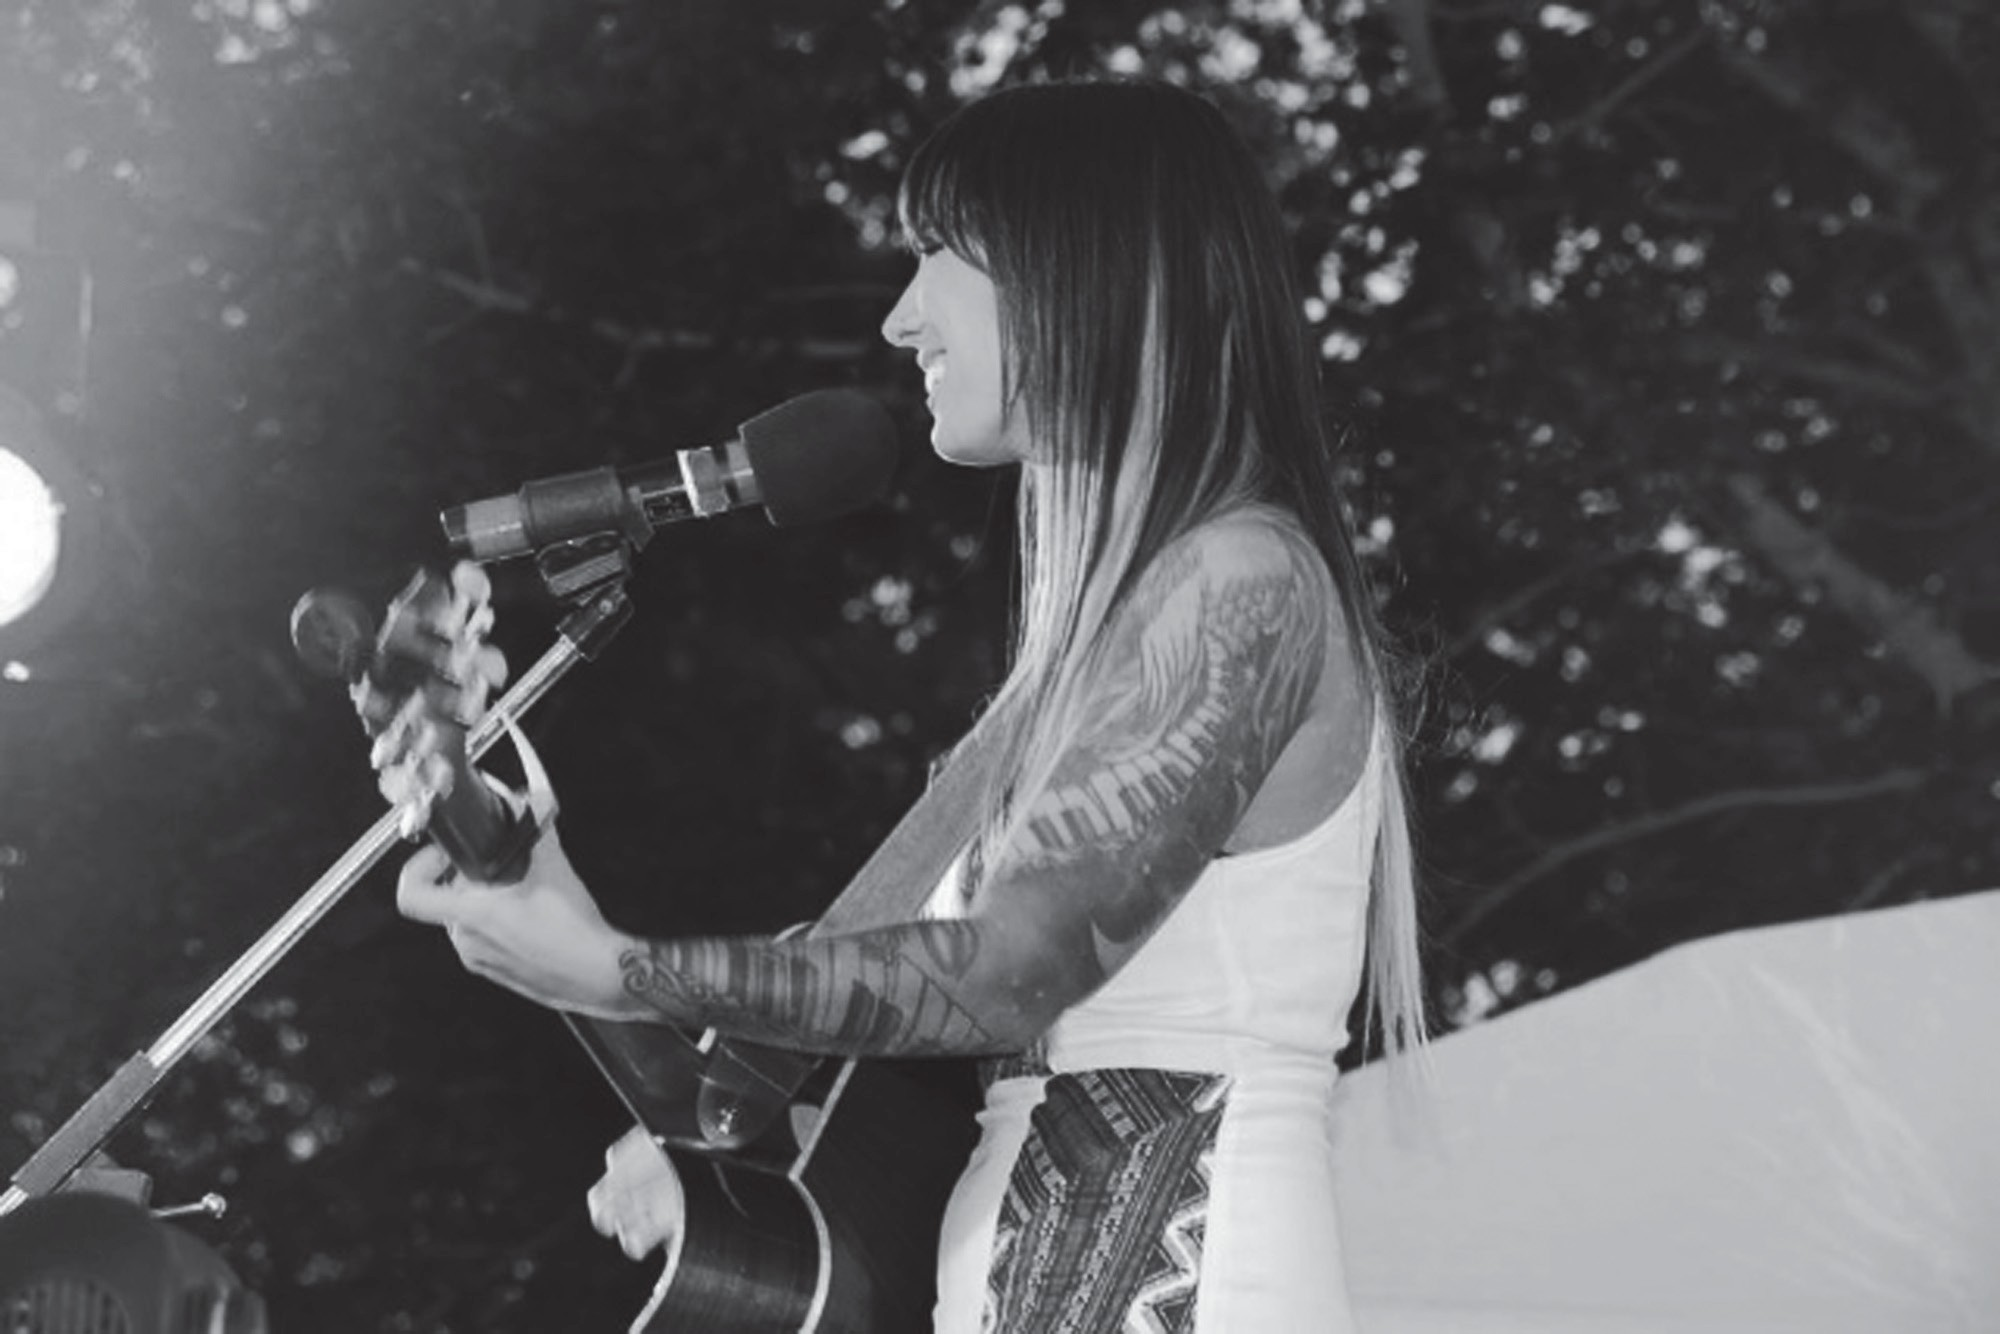 Jillian Jensen is scheduled to perform in a concert to benefit the anti-bullying program at Line Elementary School in Limerick on Columbus Day, Oct. 12.